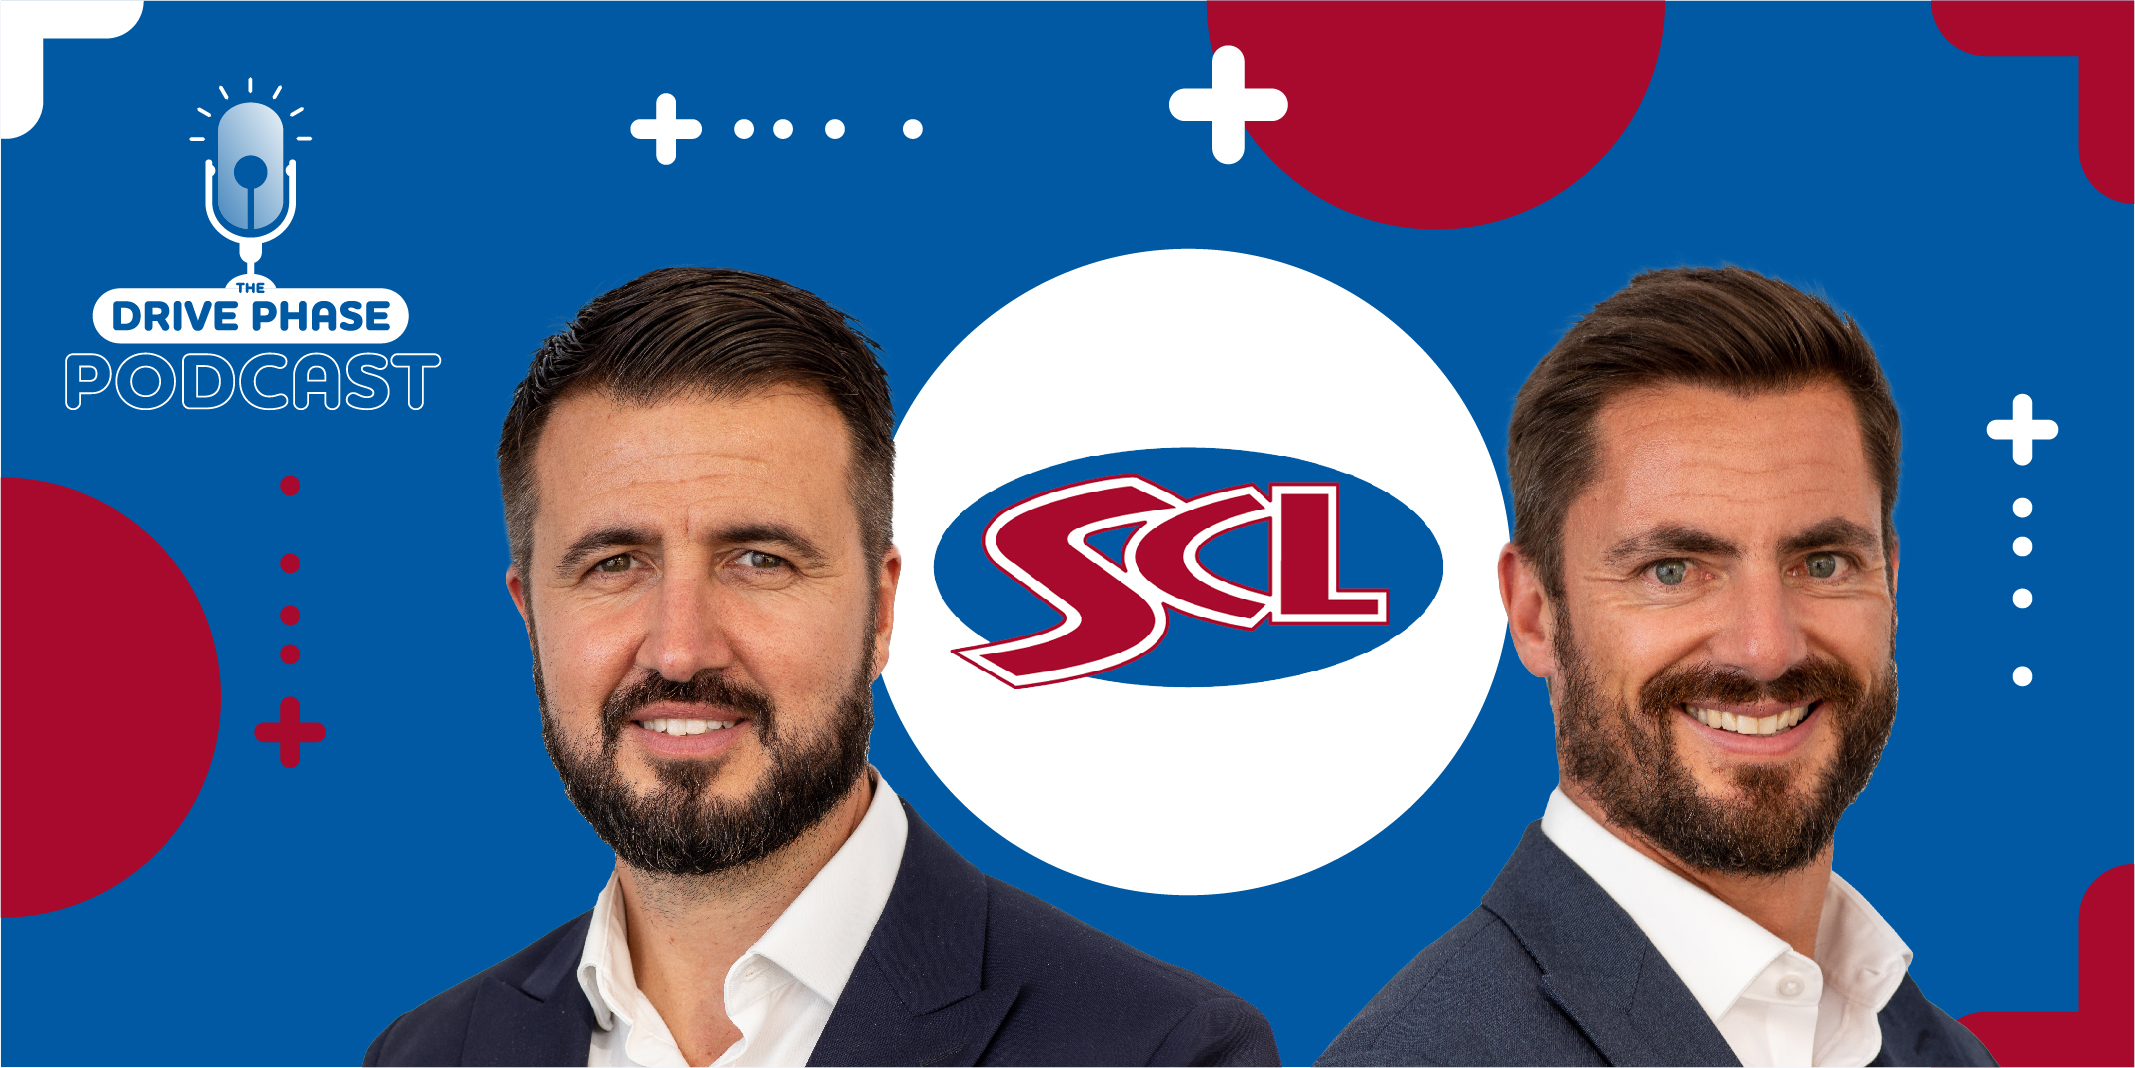 SCL Education Group